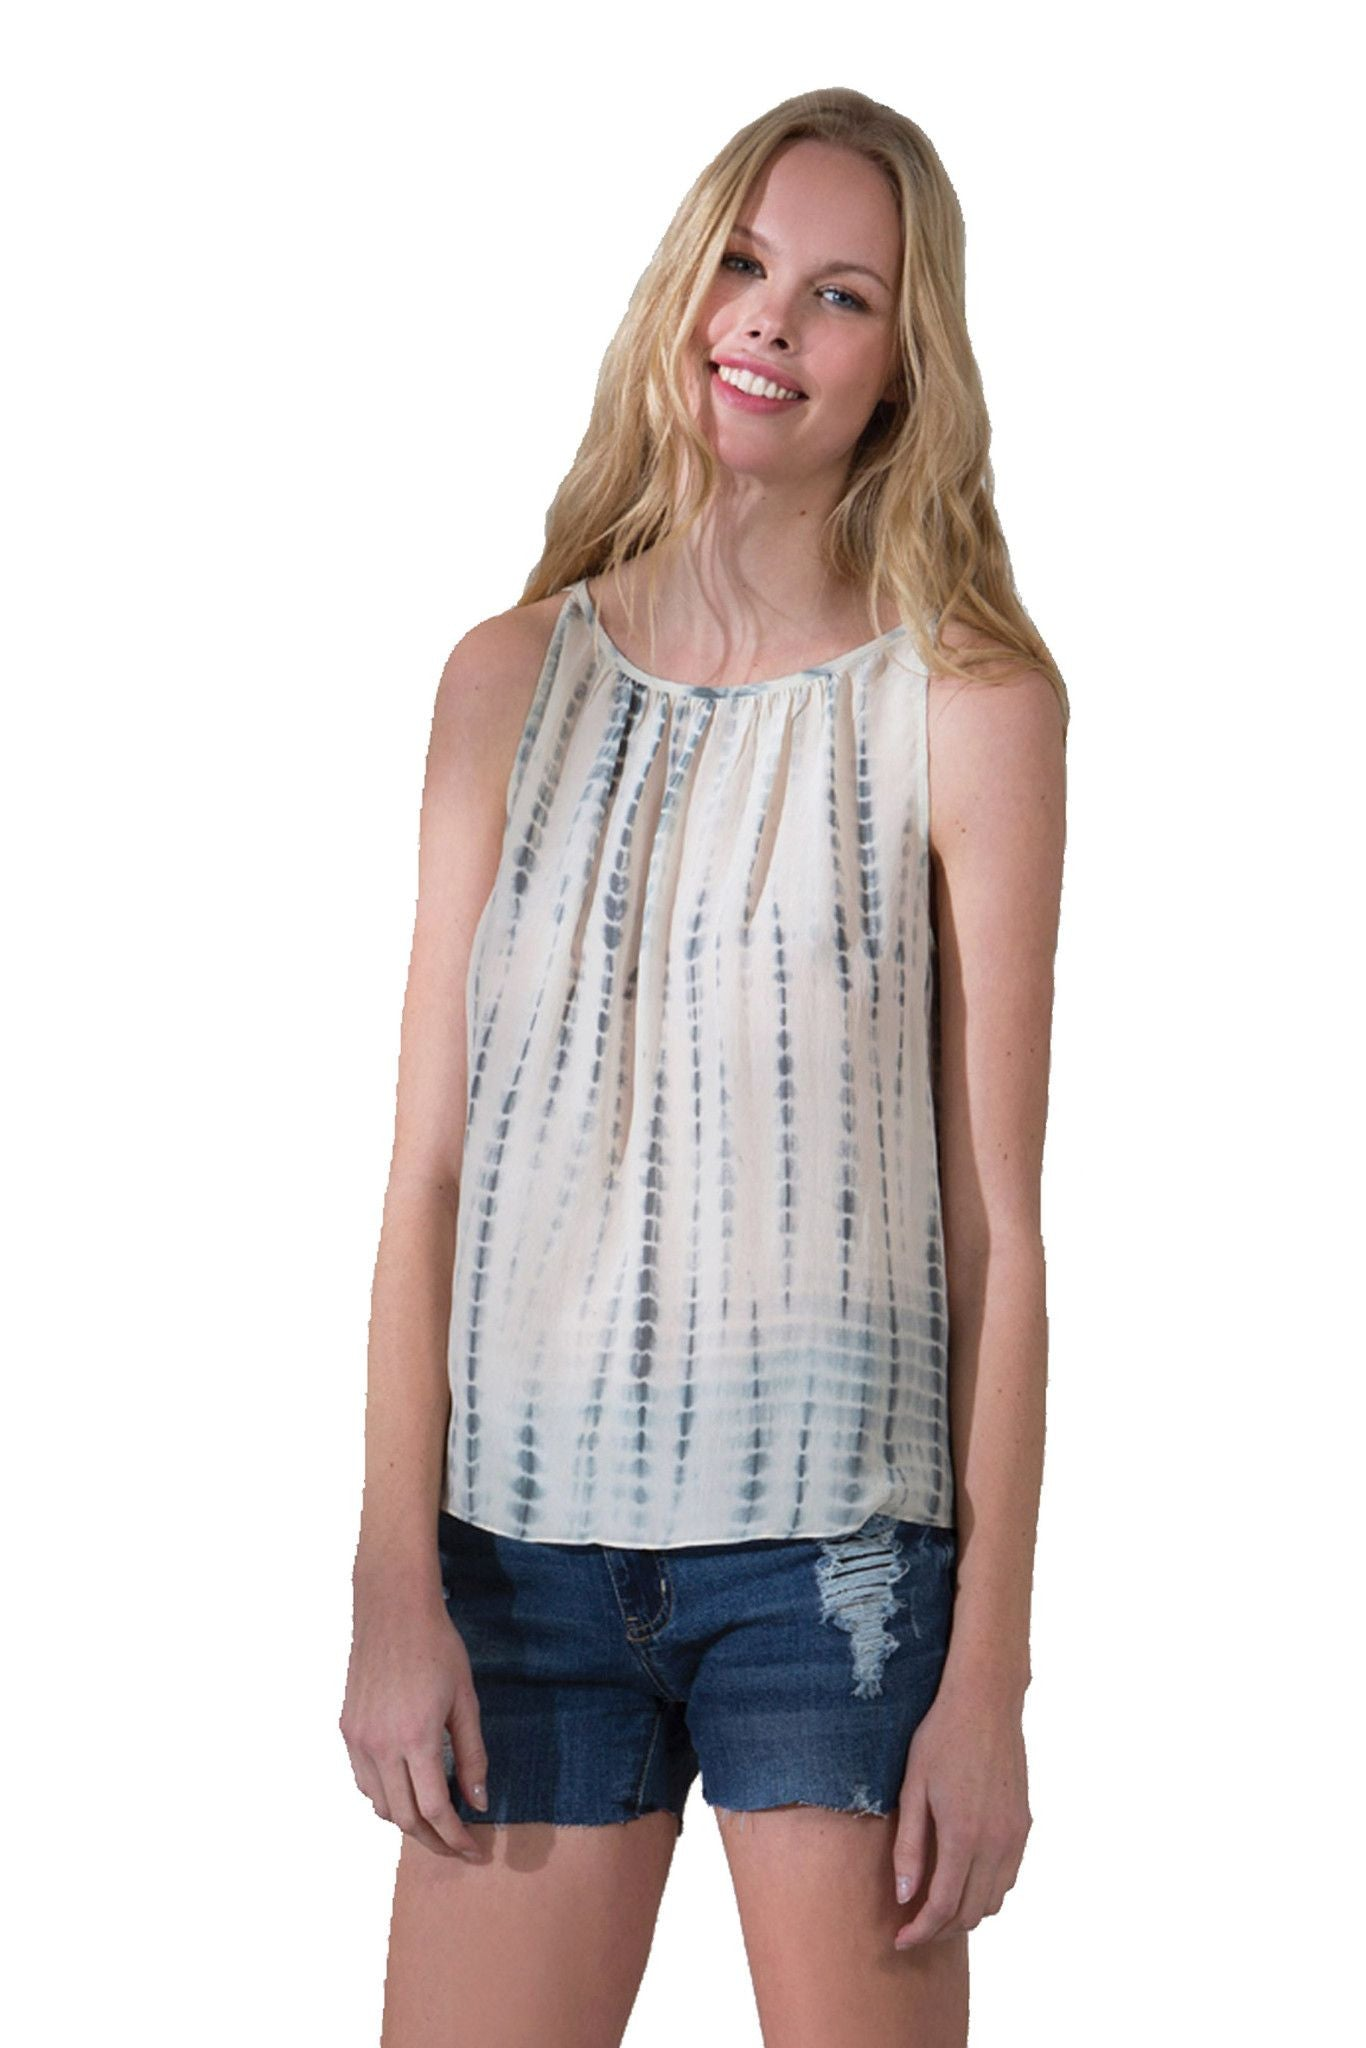 T129 PRINTED TIE DYE TANK IN CDC CHARCOAL DYED